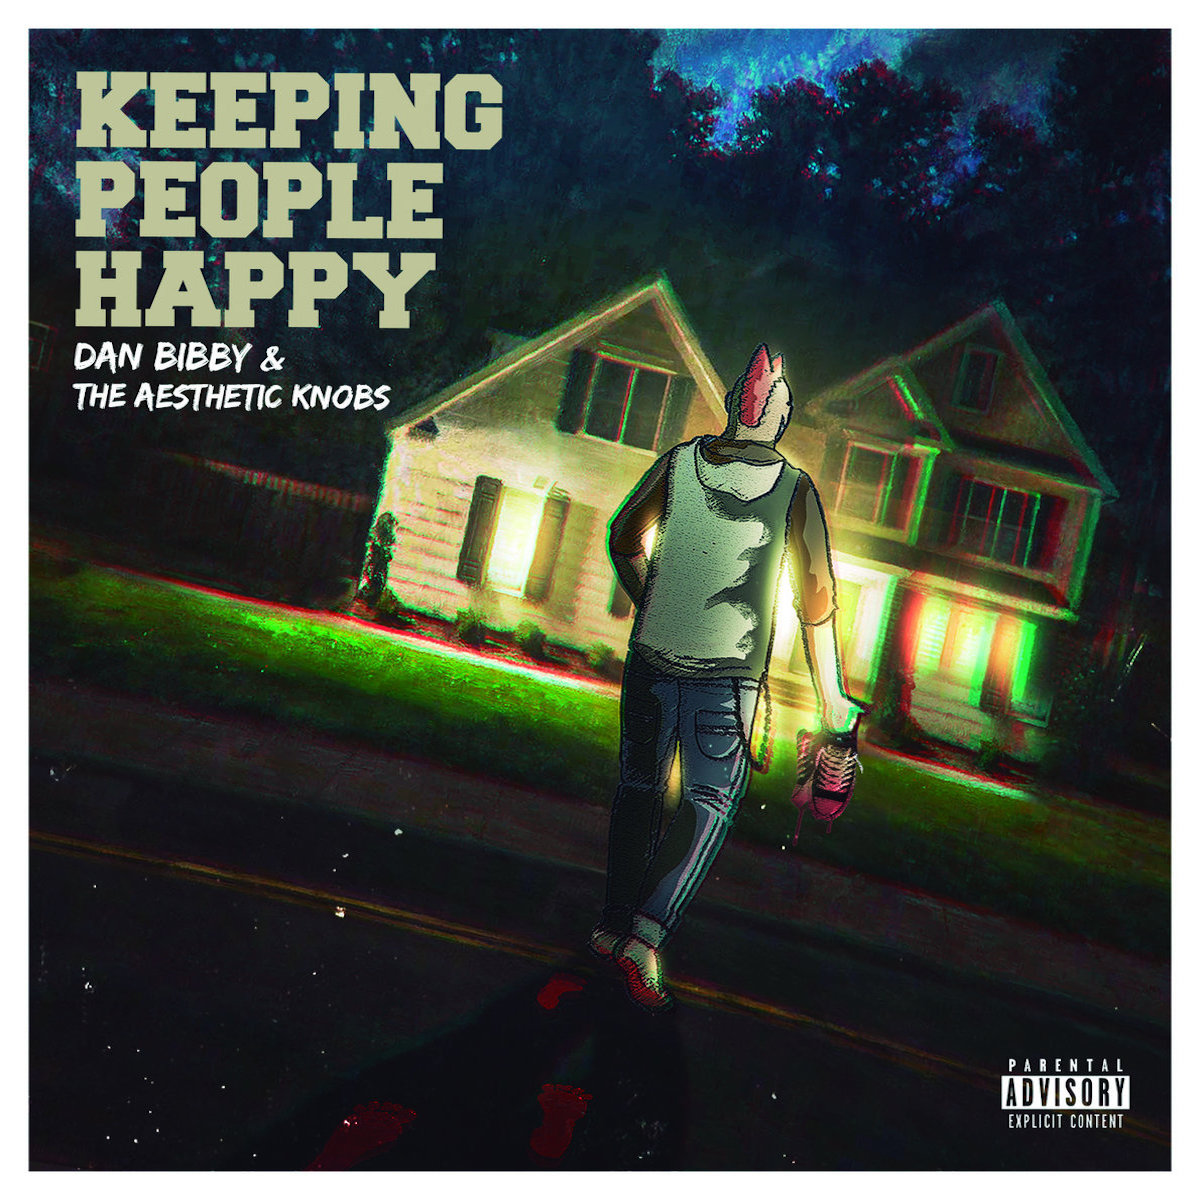 Dan Bibby & The Aesthetic Knobs - Keeping People Happy